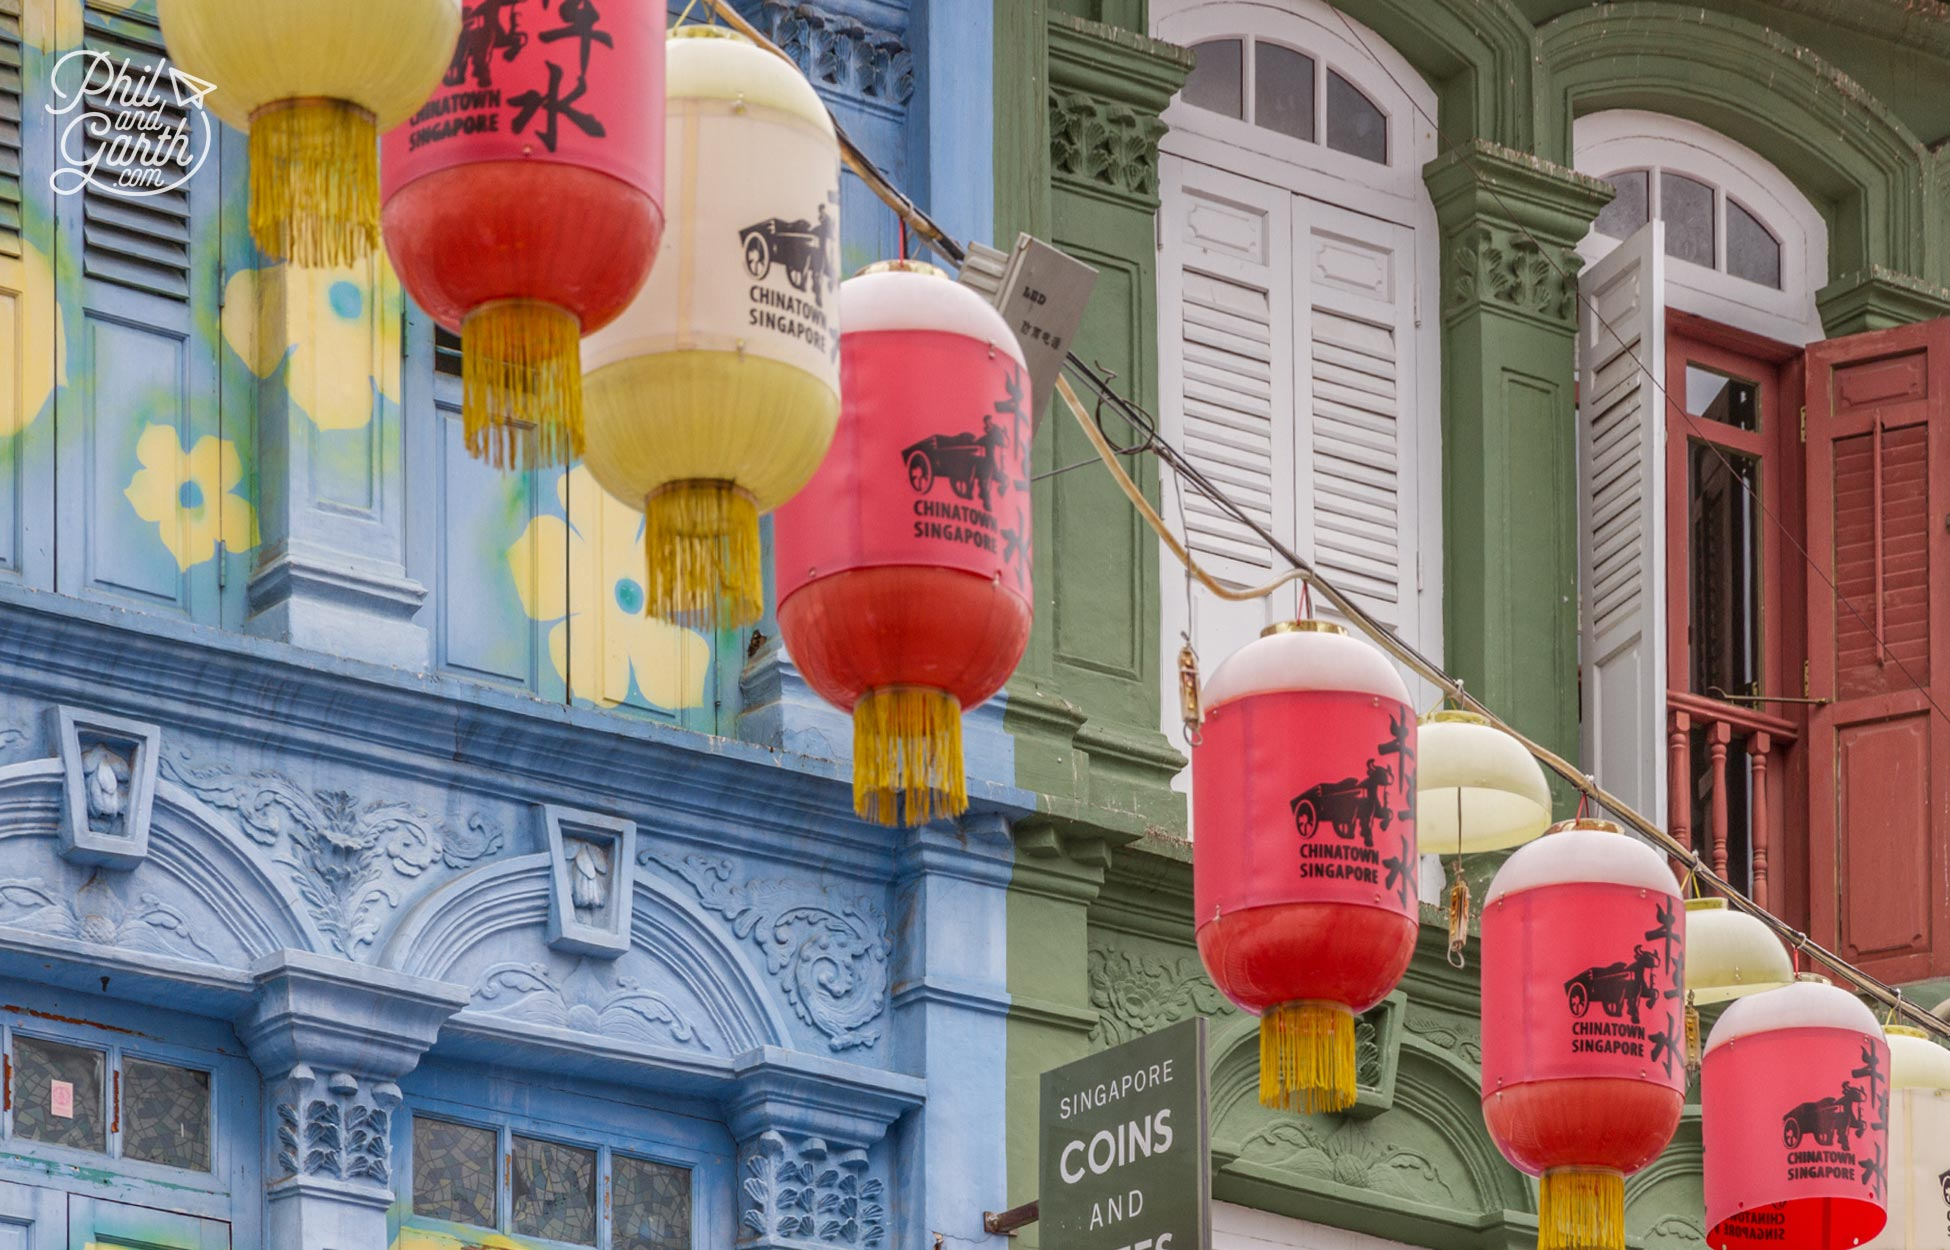 Don't forget to look up at the colourful shophouse facades and lanterns overhead